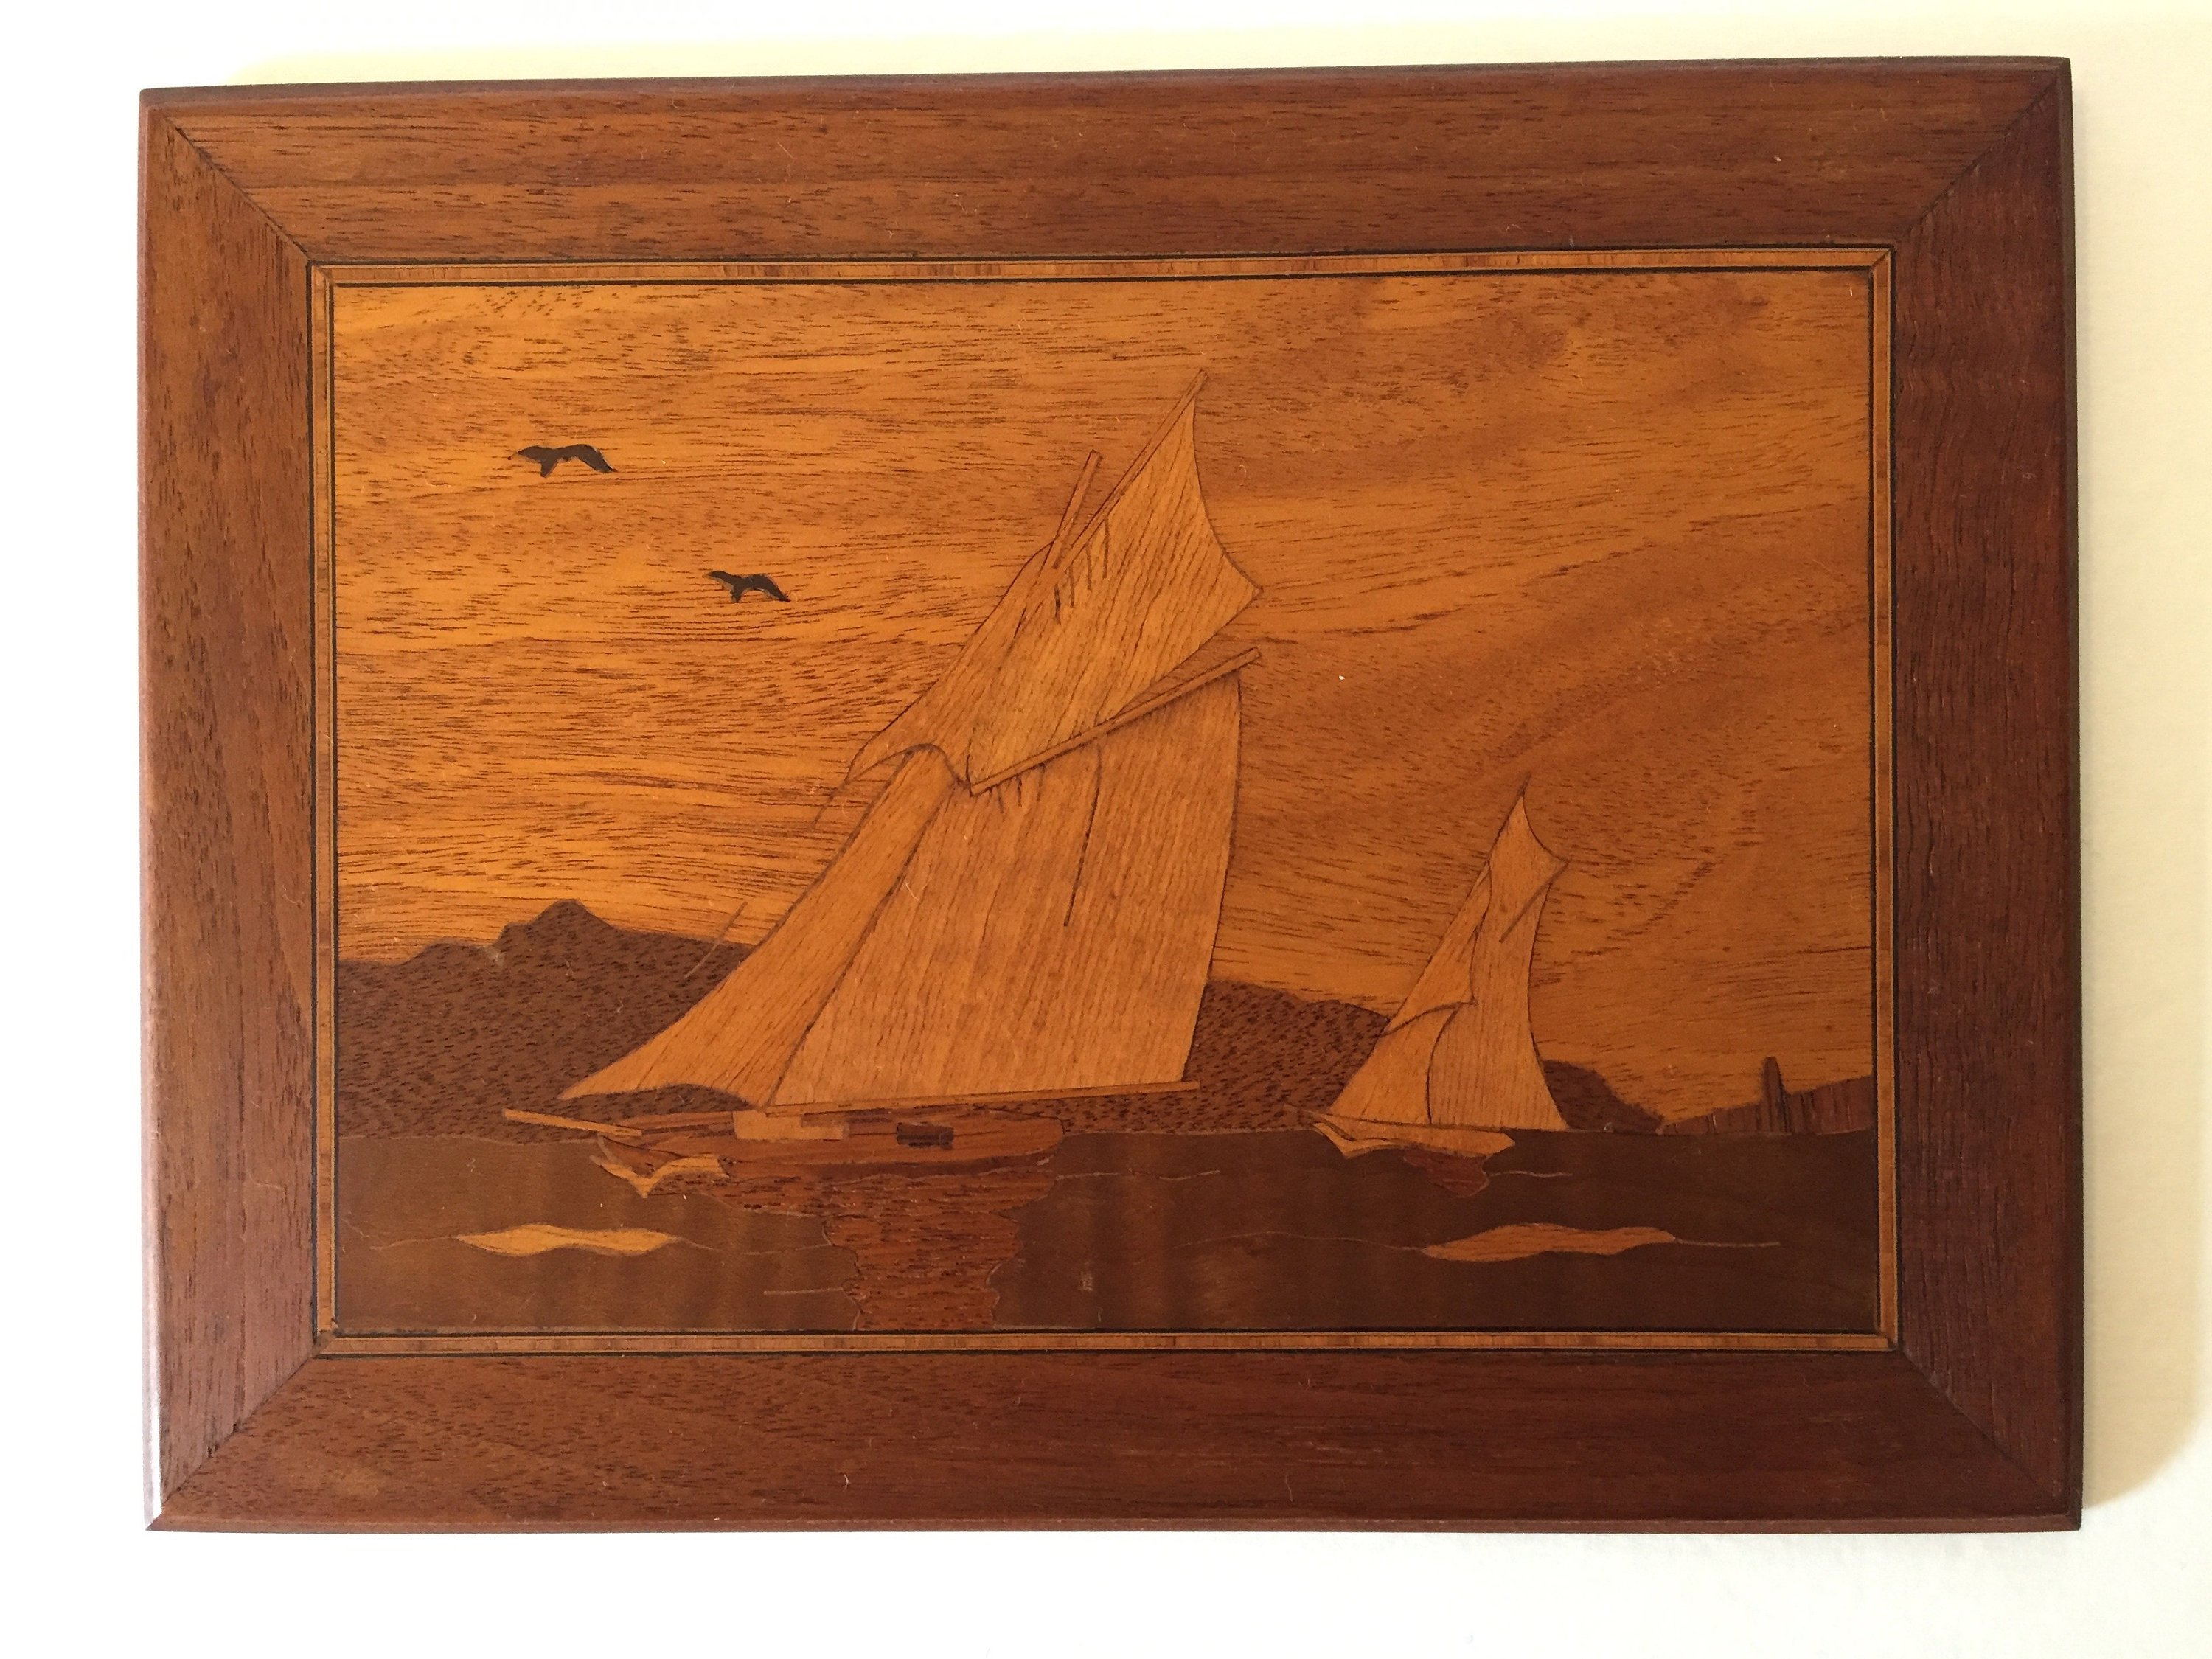 Vintage Wood Inlay Marquetry Handcrafted Picture Of A Cabin In The Woods,  Inlaid Wood Artwork